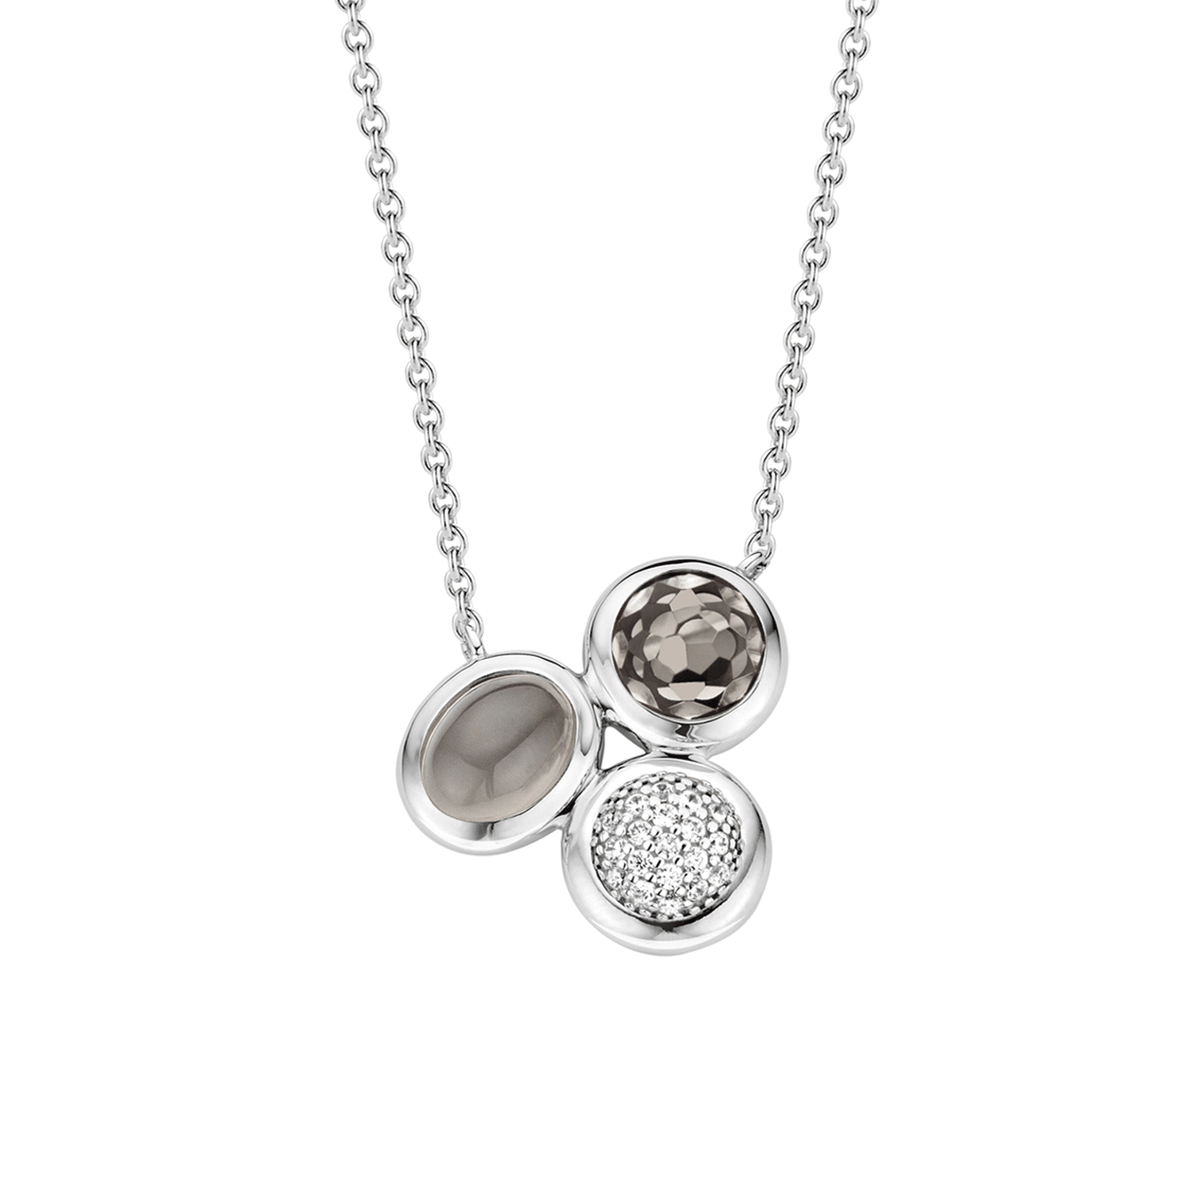 TI SENTO - Milano Necklace 3840DG